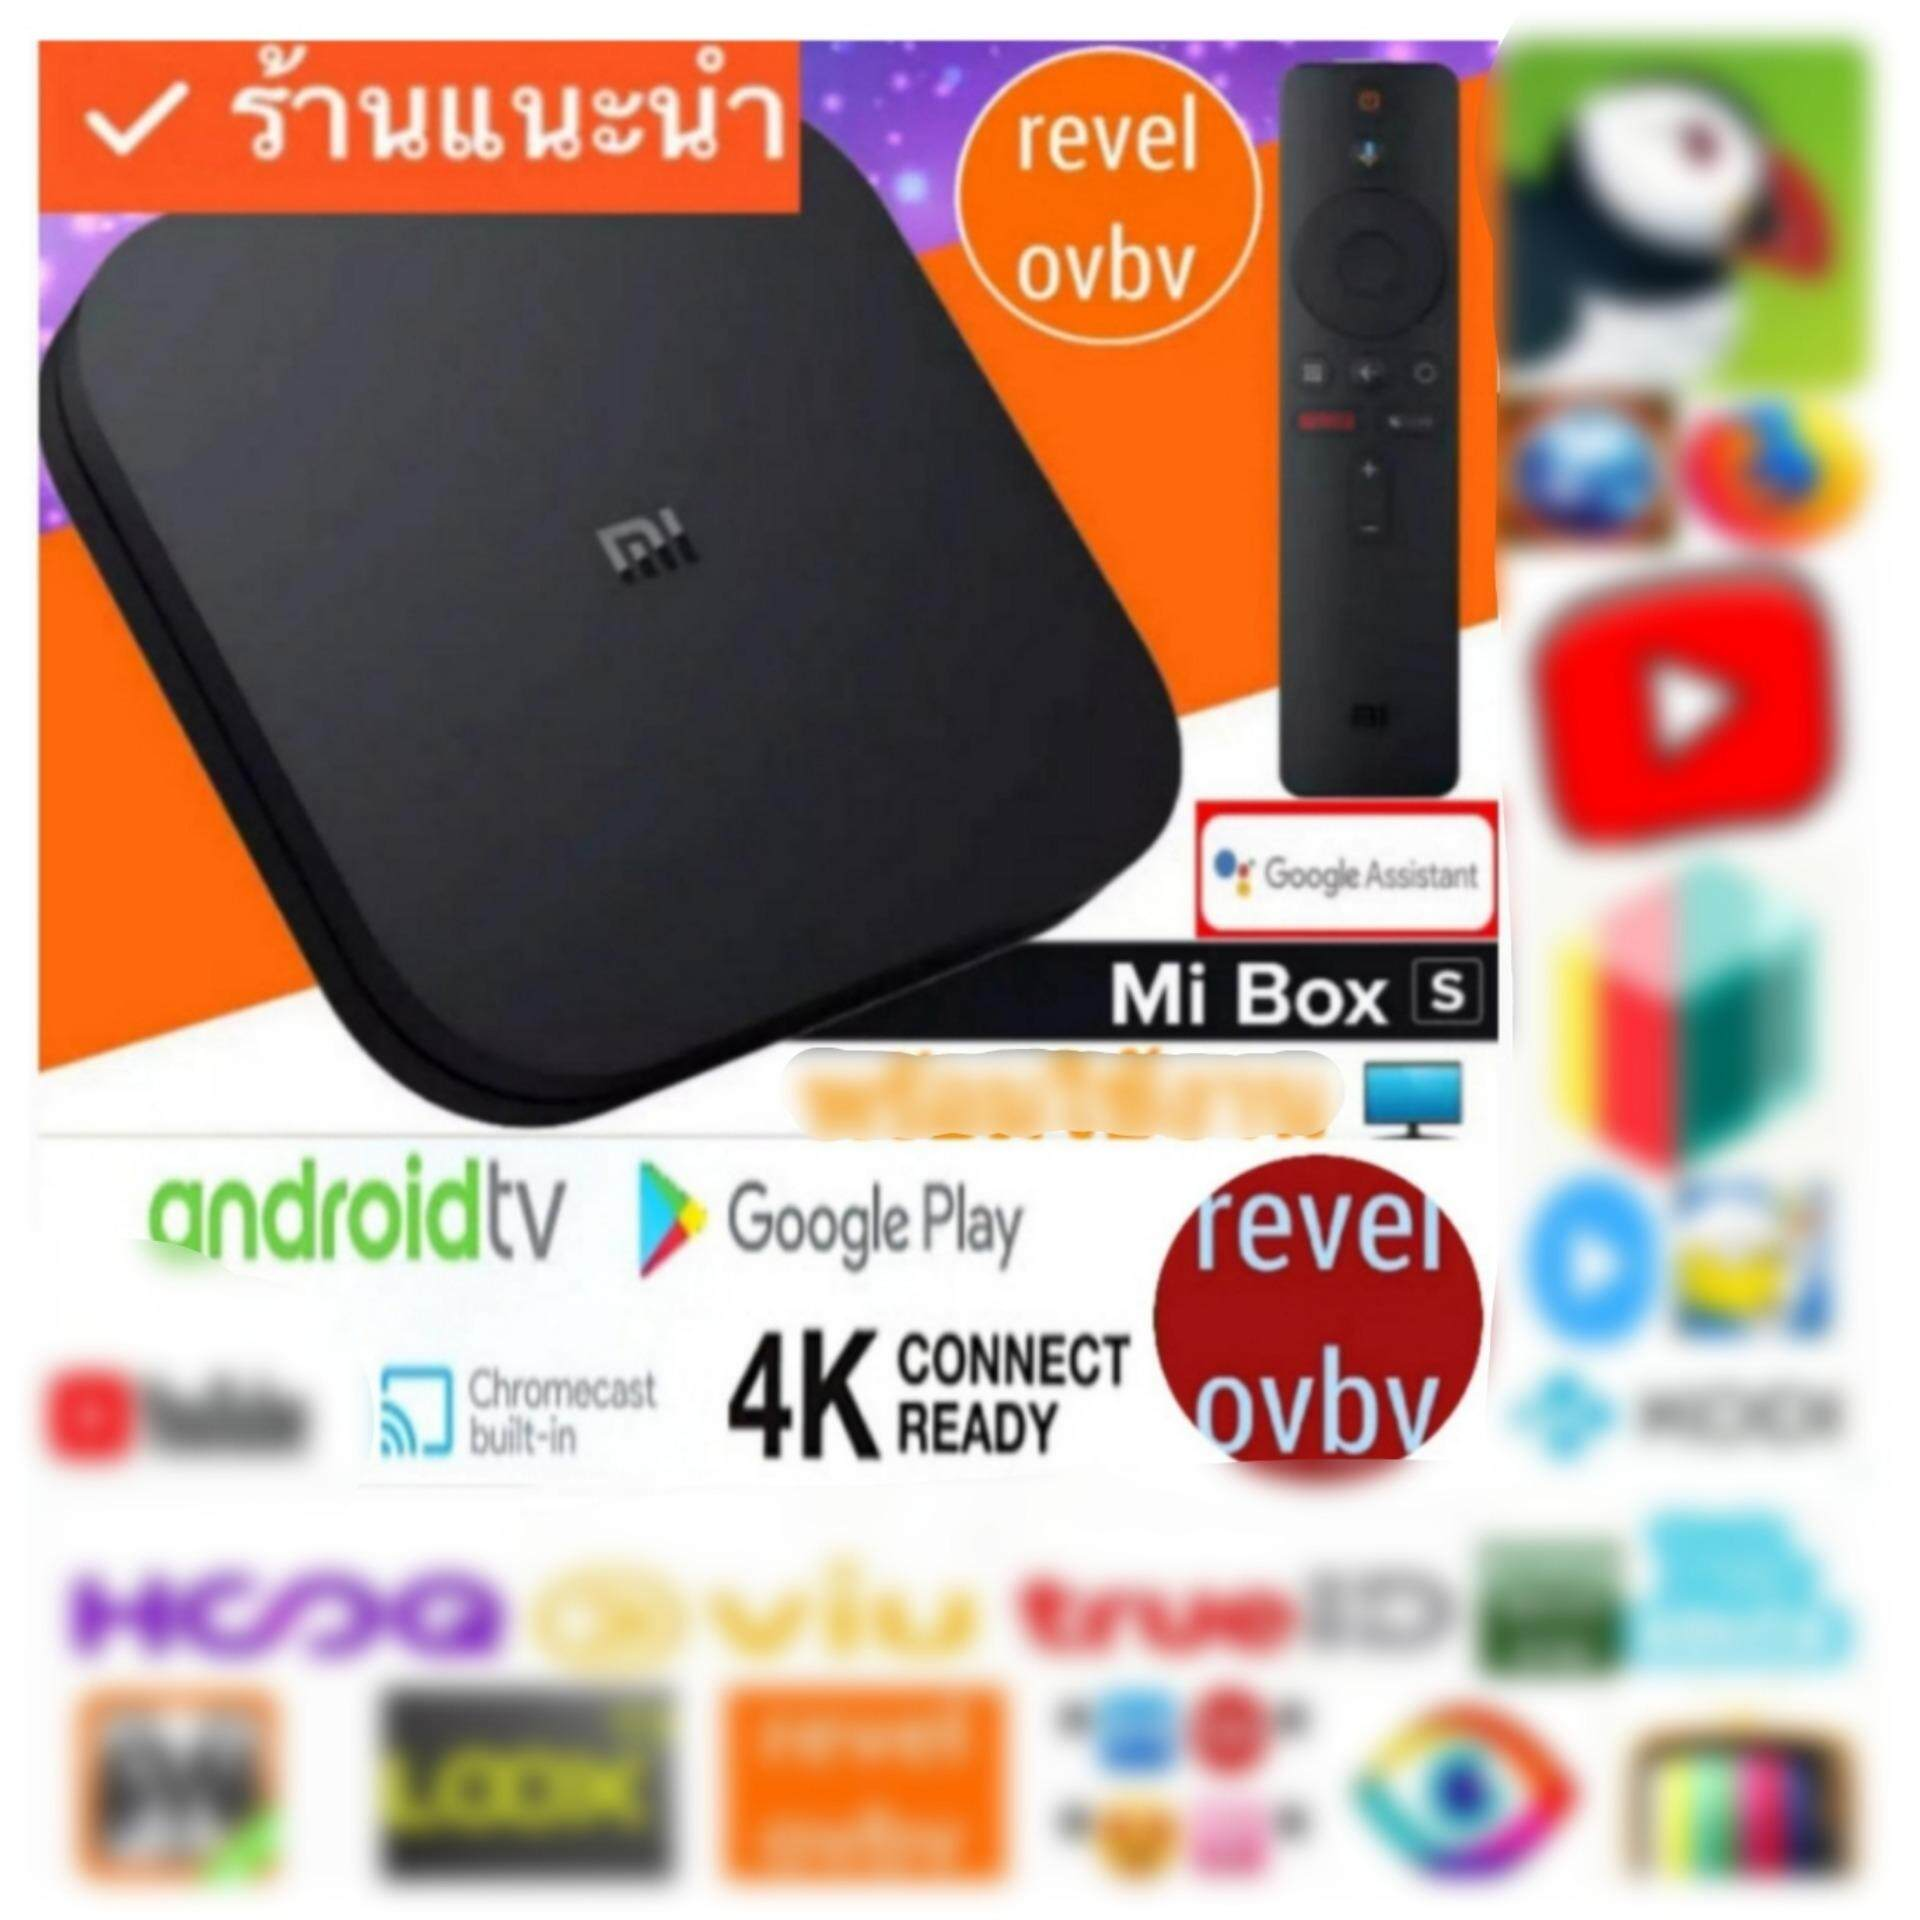 ชัยภูมิ Mi Box S 2018 Android 8.1 chromecast built-in ในตัว